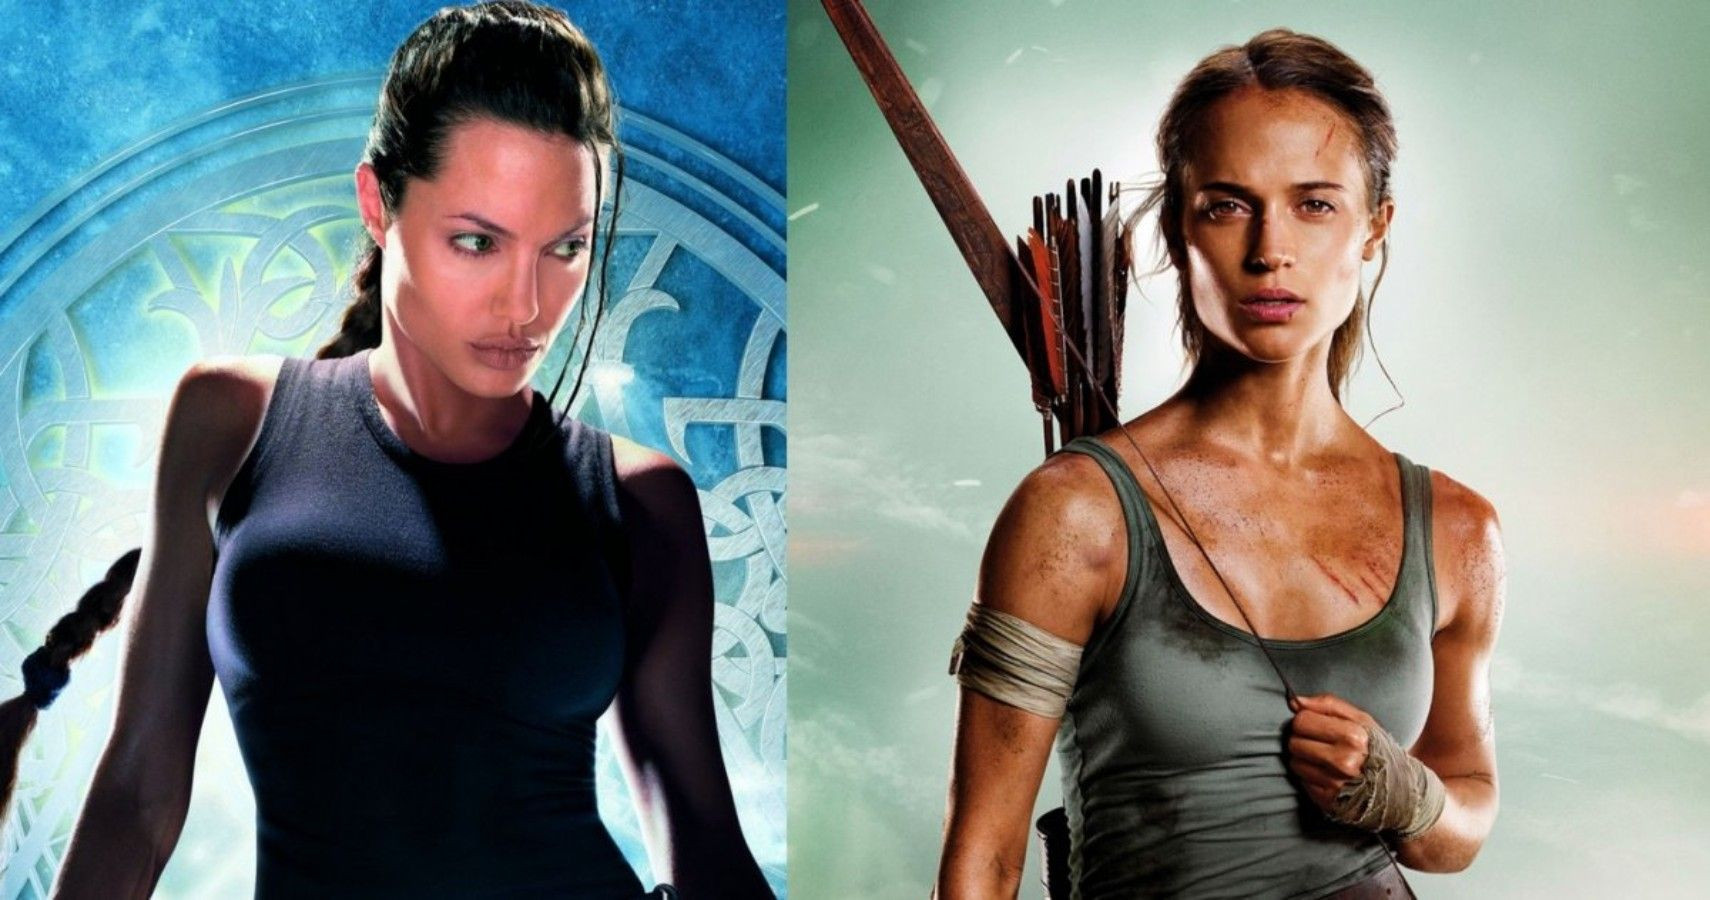 tomb raider 1996 vs 2018